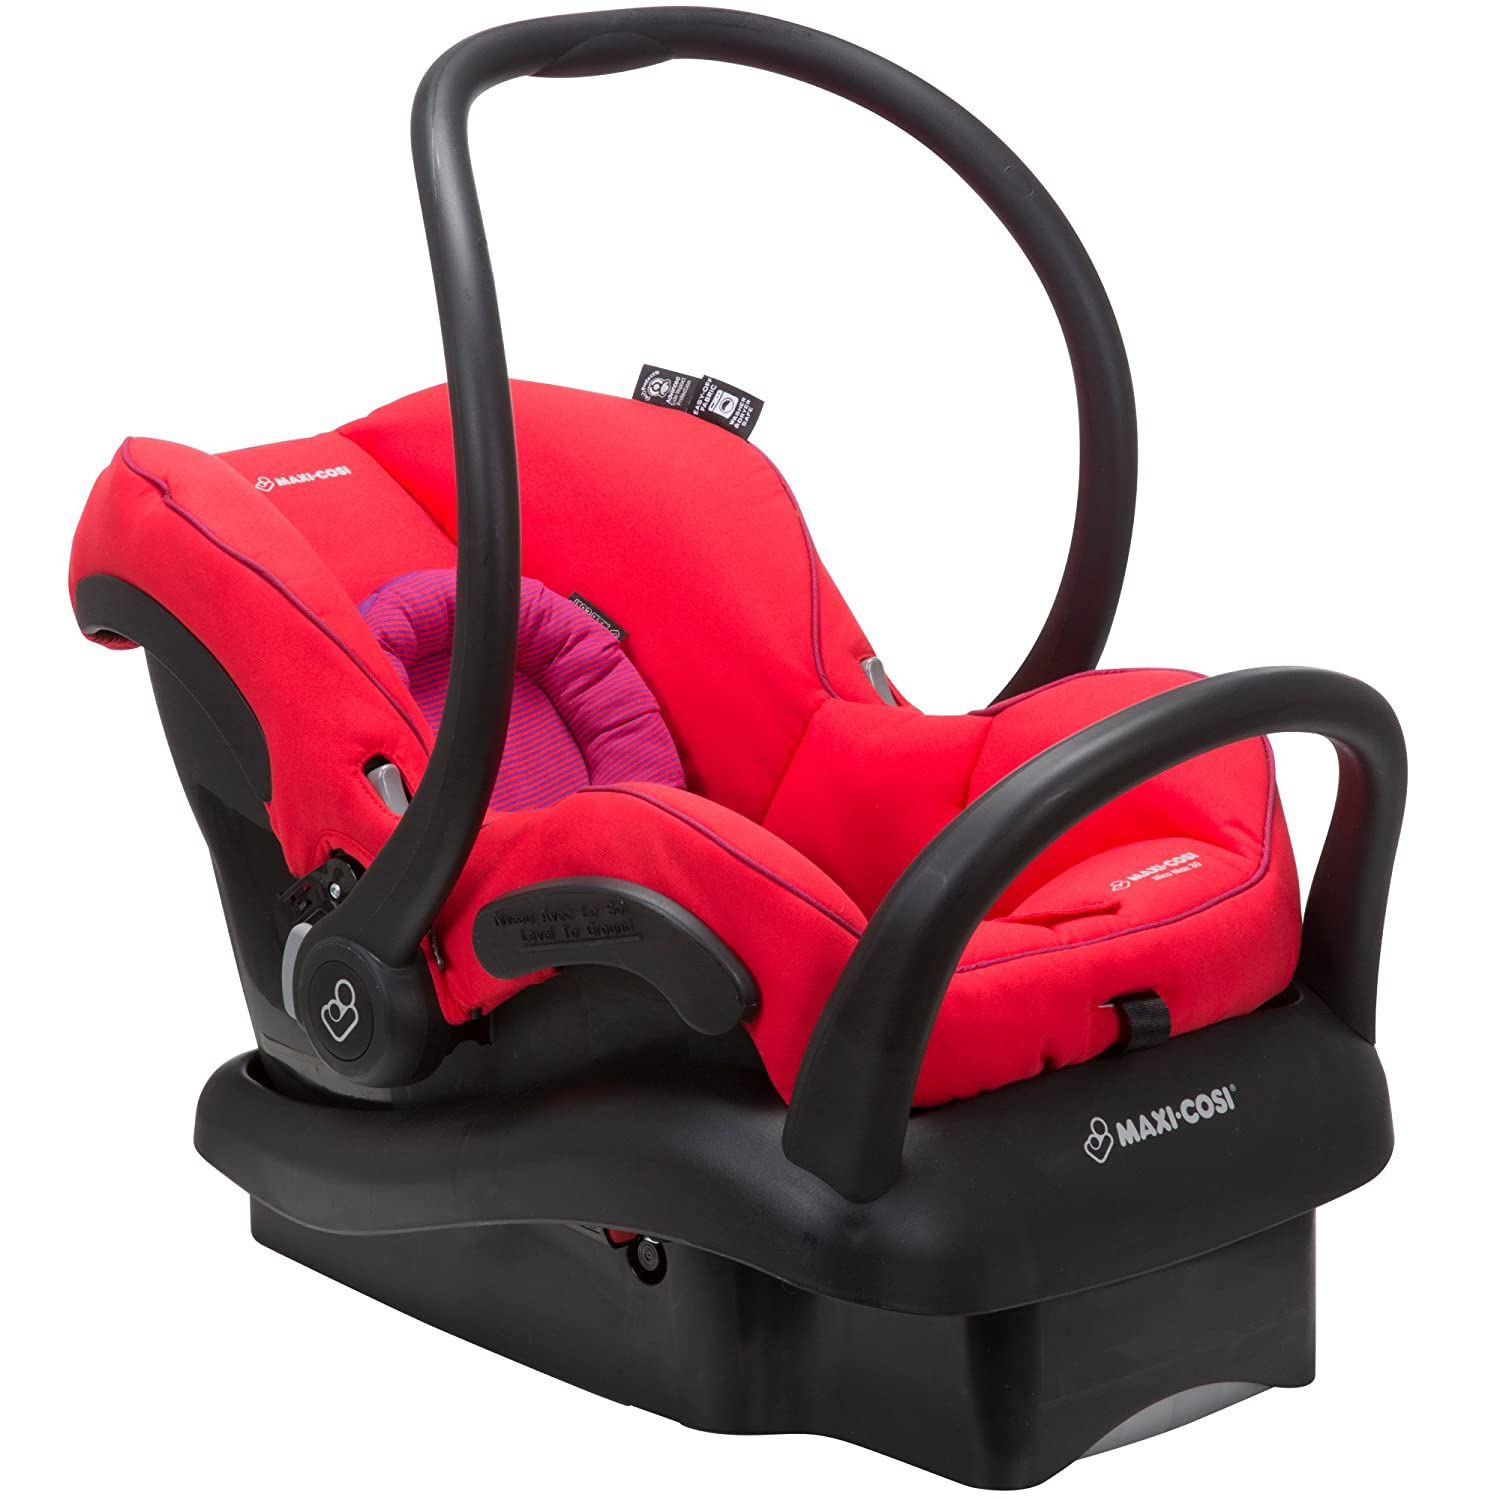 Red Orchid Maxi-Cosi Mico Max 30 Infant Car Seat